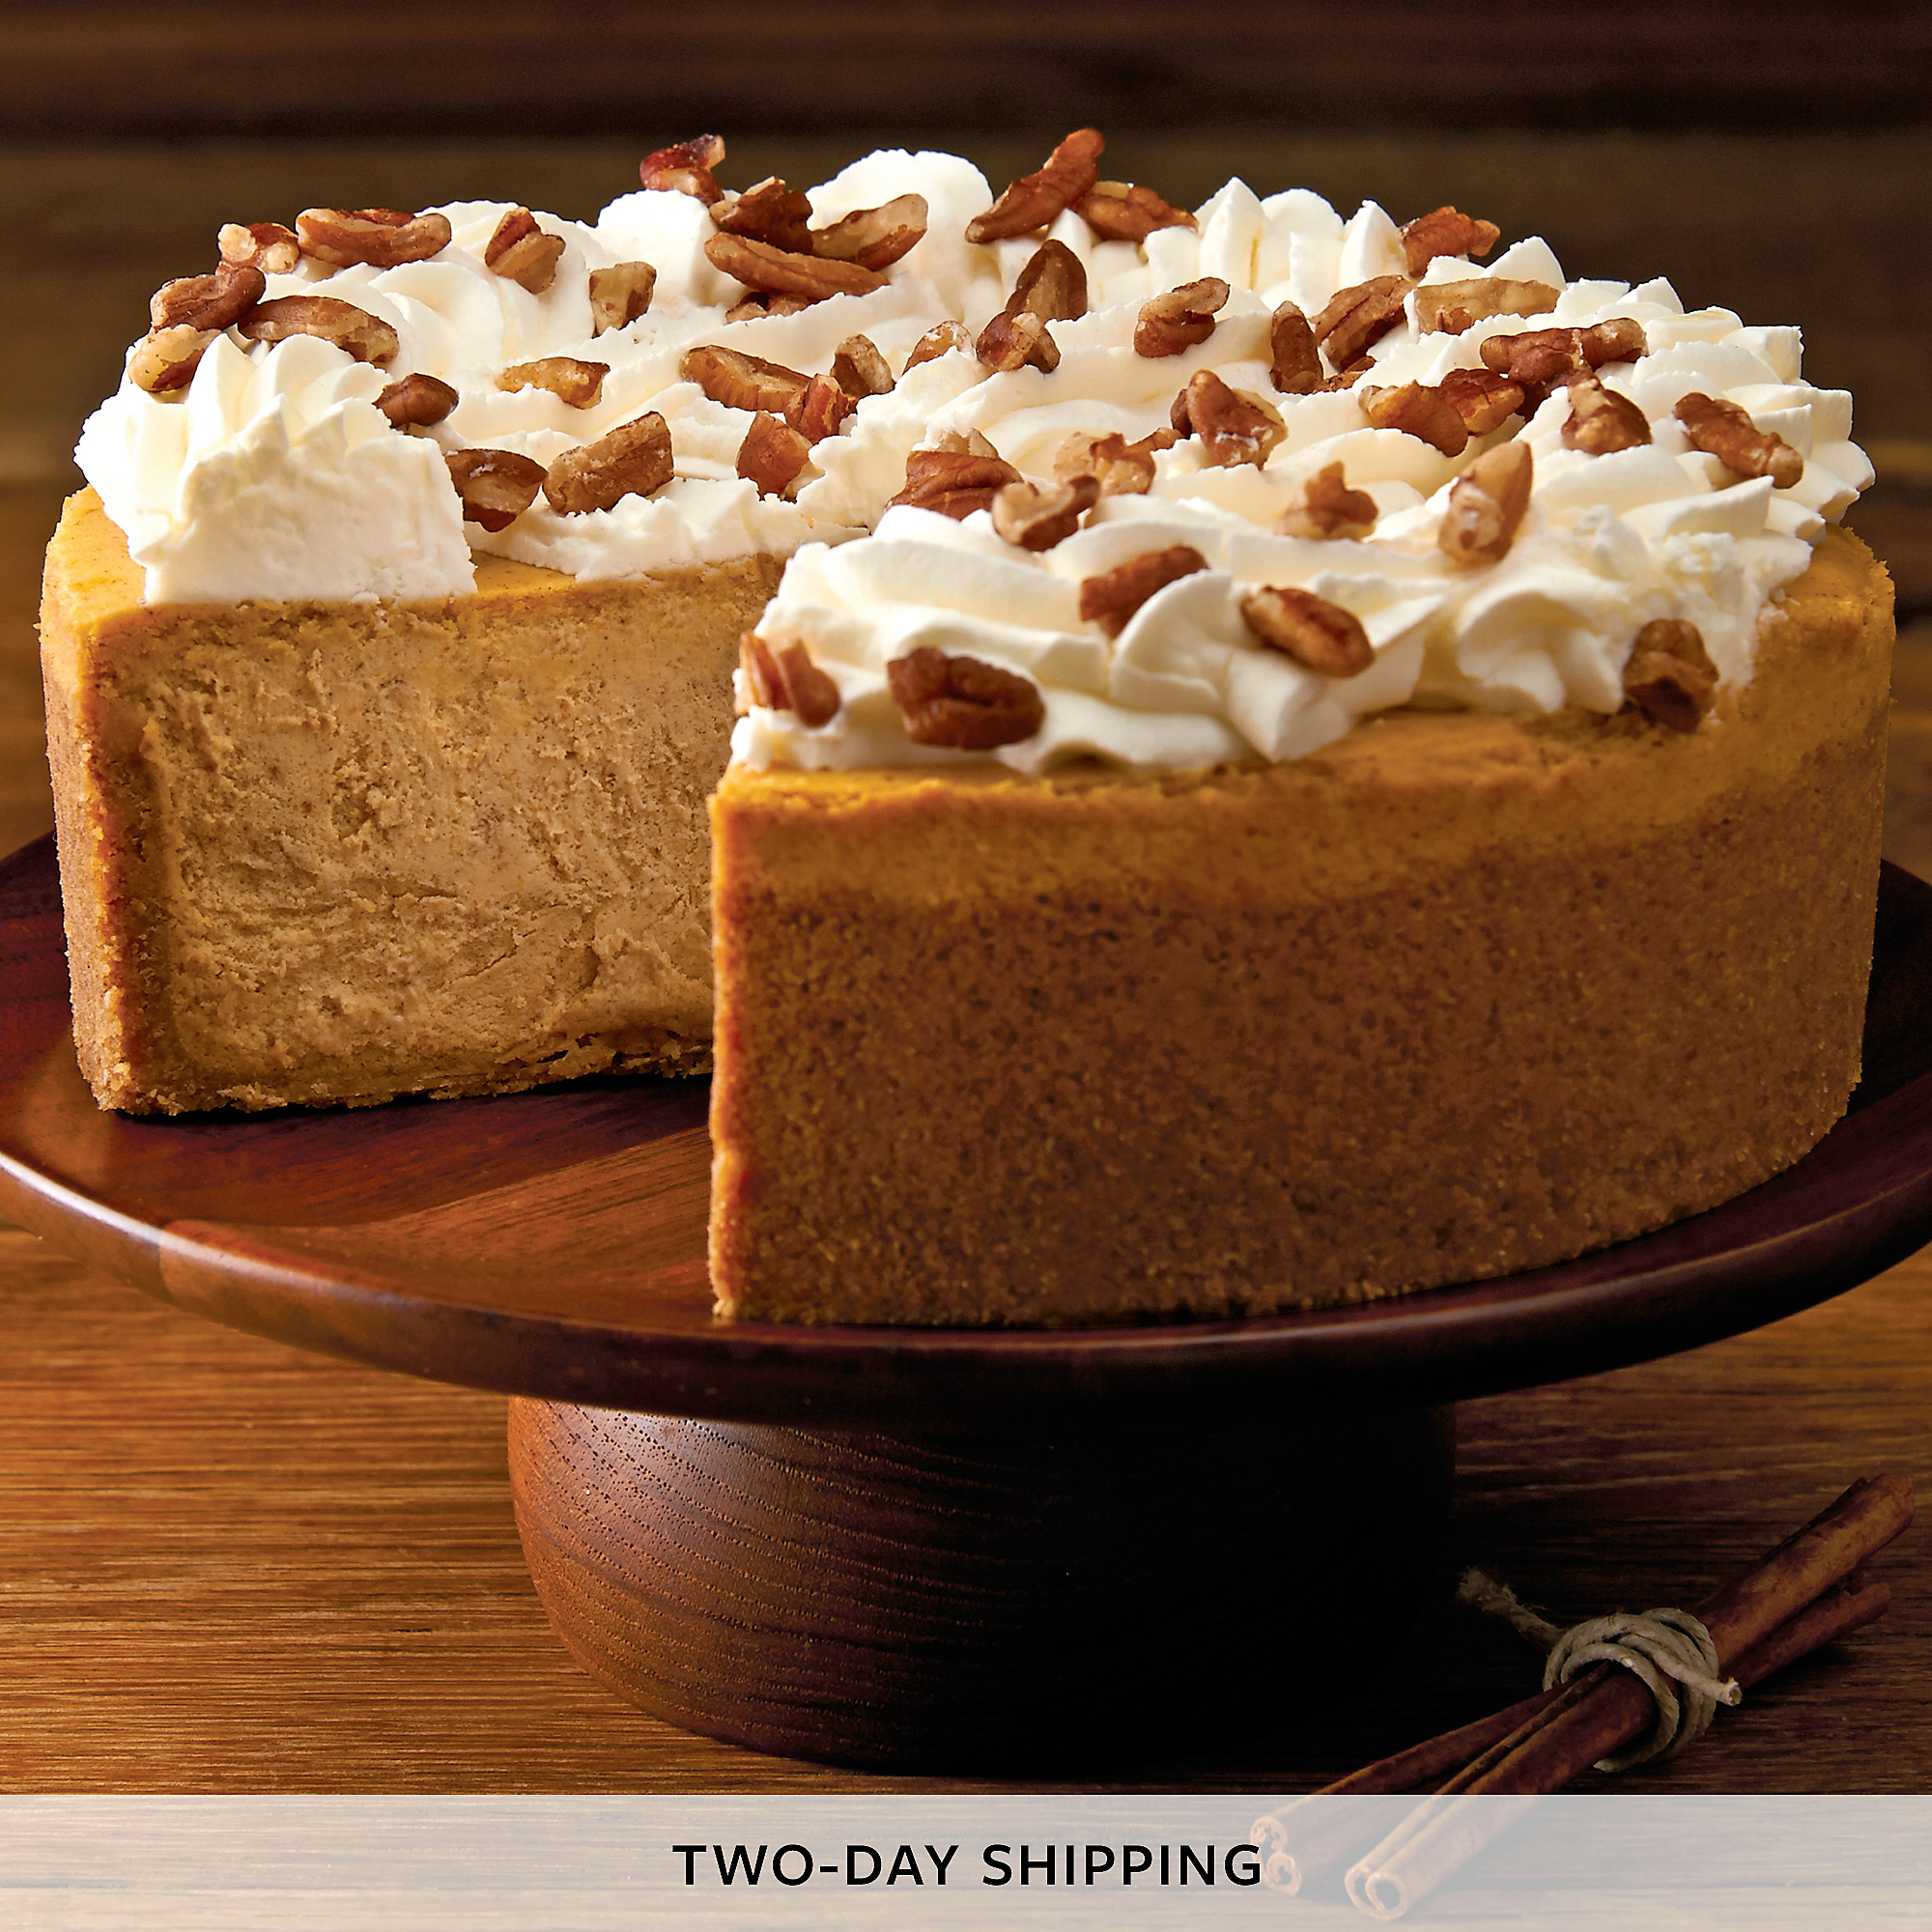 Cheesecake, Cakes, and Pies. Sweeten every occasion with gourmet cakes, one-of-a-kind pies, indulgent treats, and incredible cheesecakes from The Cheesecake Factory®.